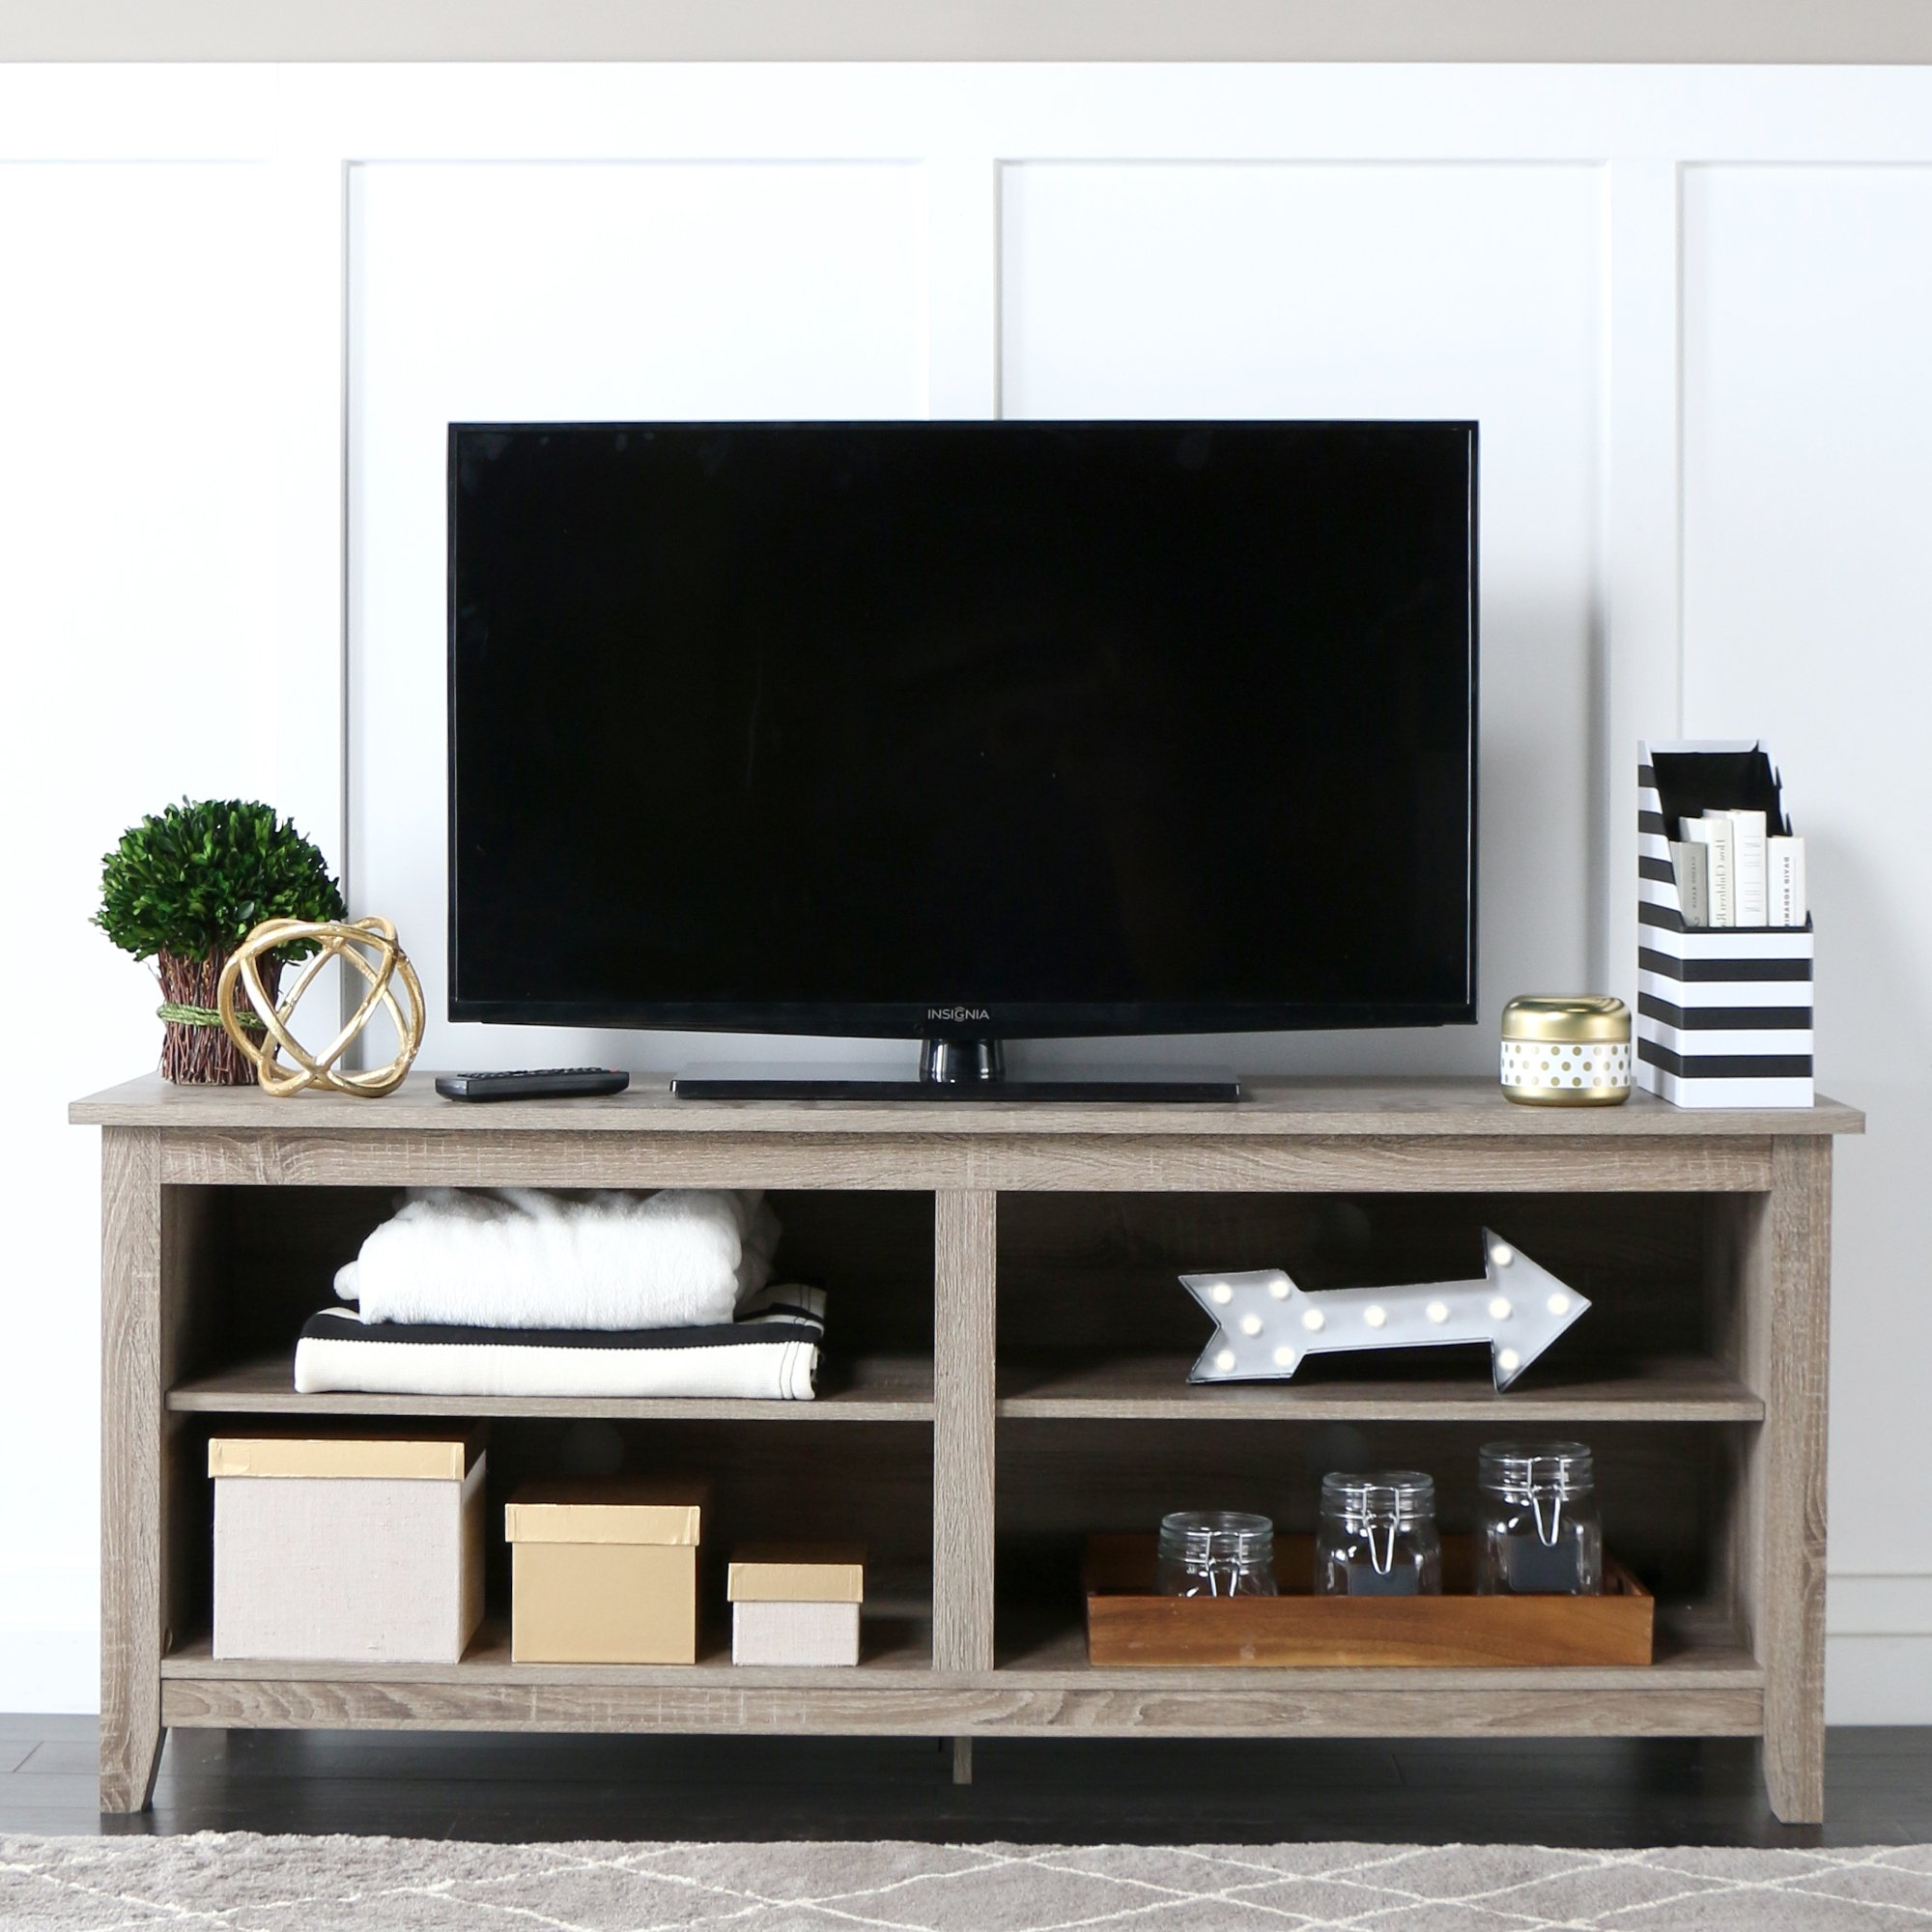 Rustic Farmhouse 55 Inch Tv Stand Smart For Tcl Insignia Vizio Men